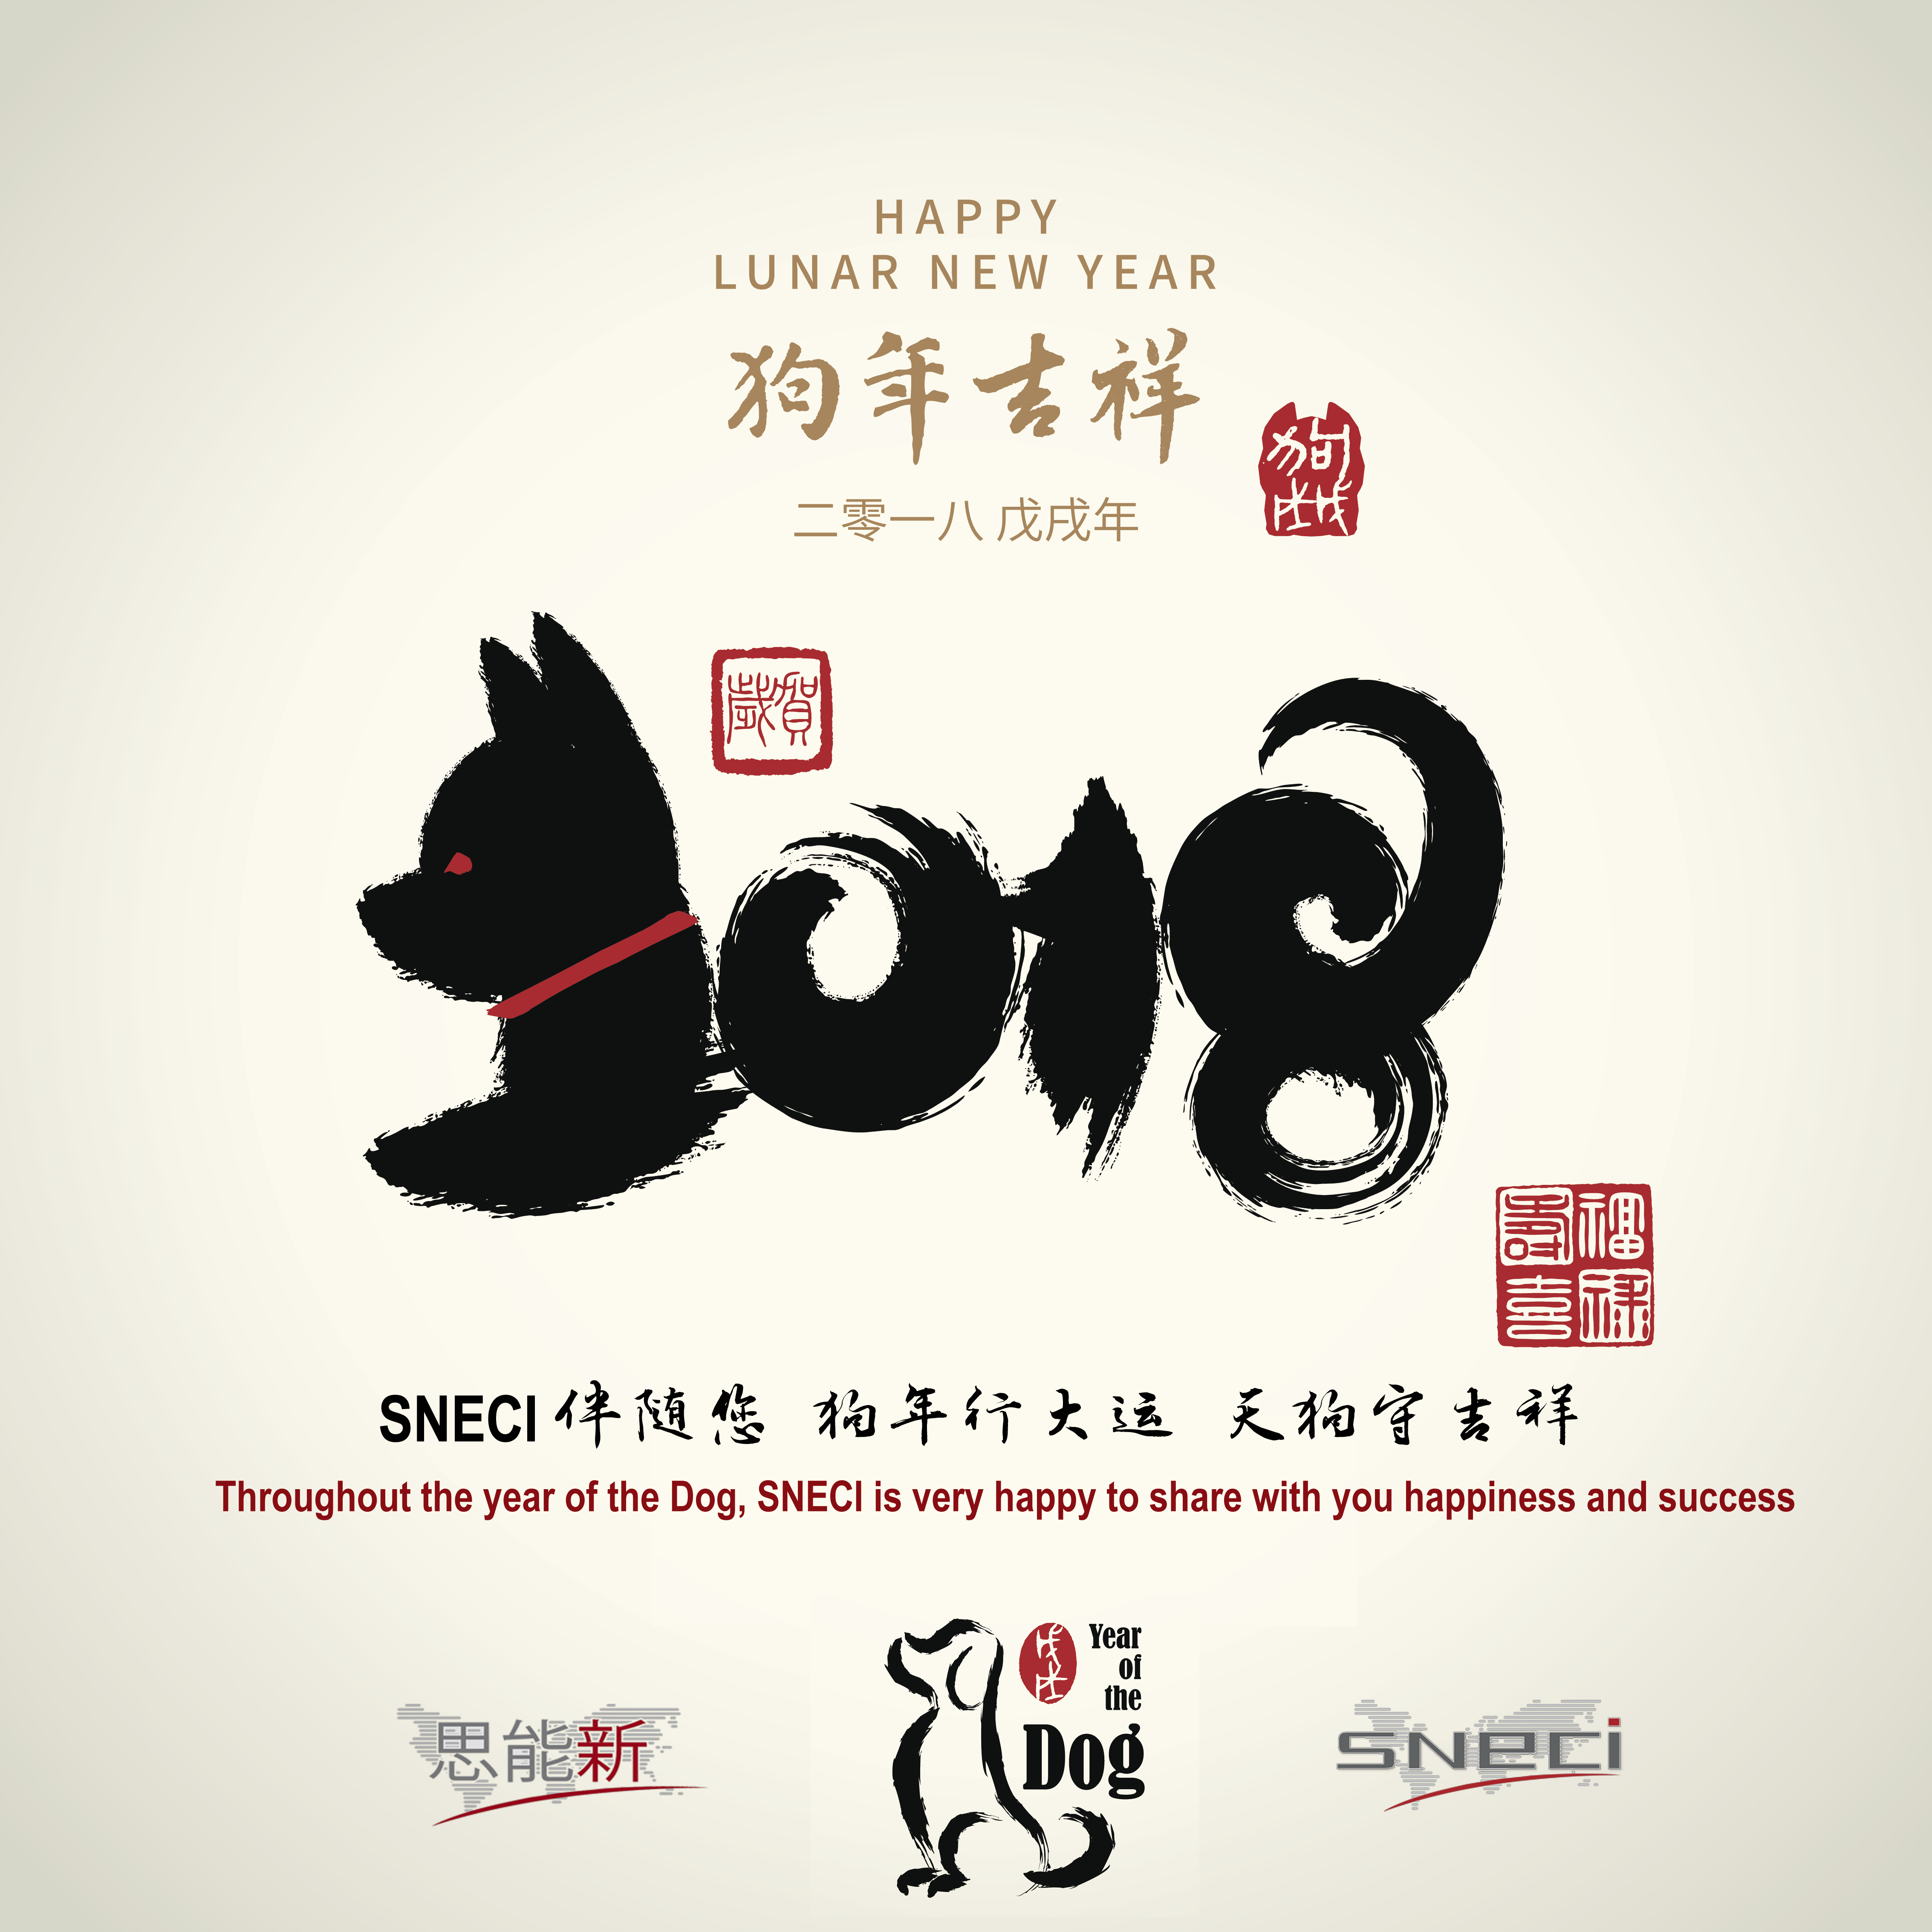 the sneci team wishes you all the best for the year of the dog